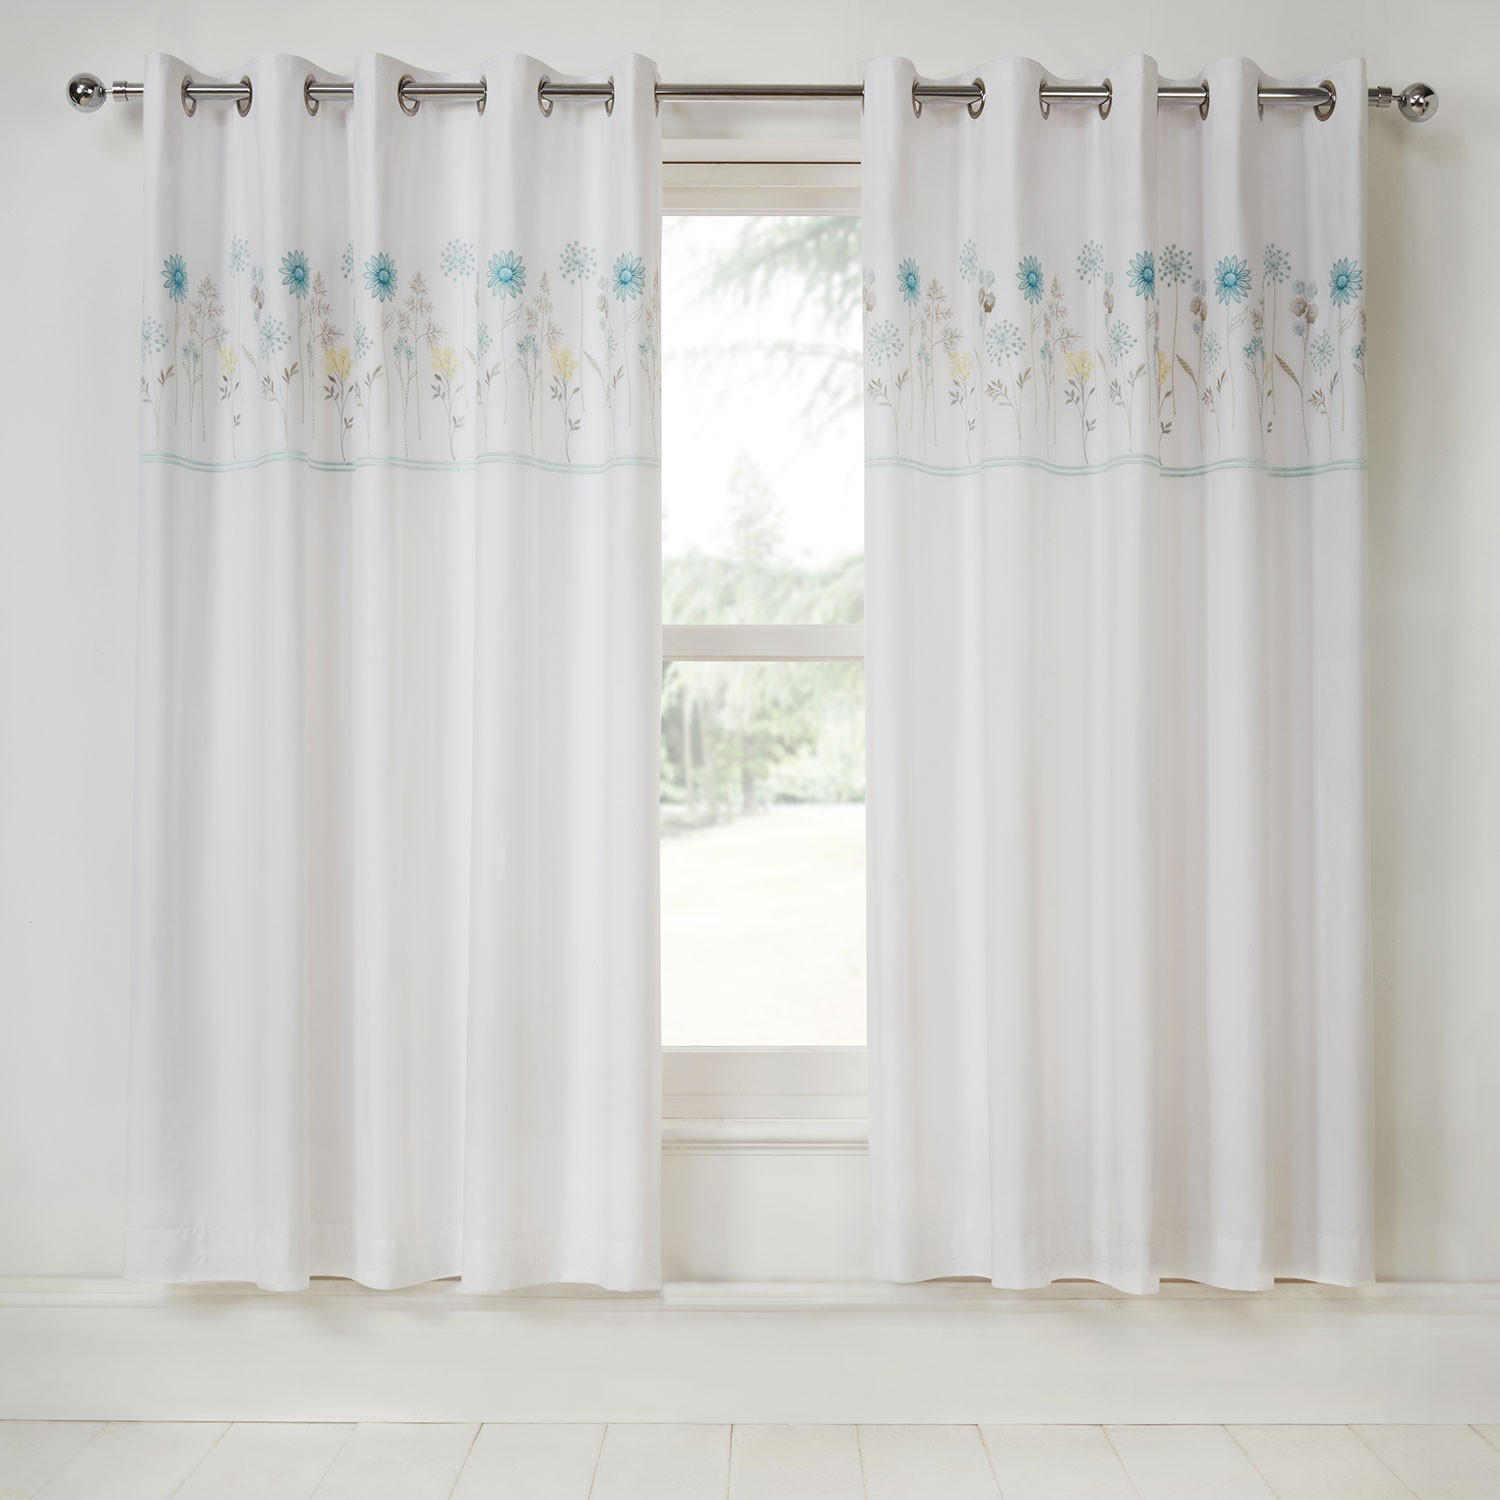 Anthropologie Curtains Sale | Embroidered Curtains | French Panel Curtains